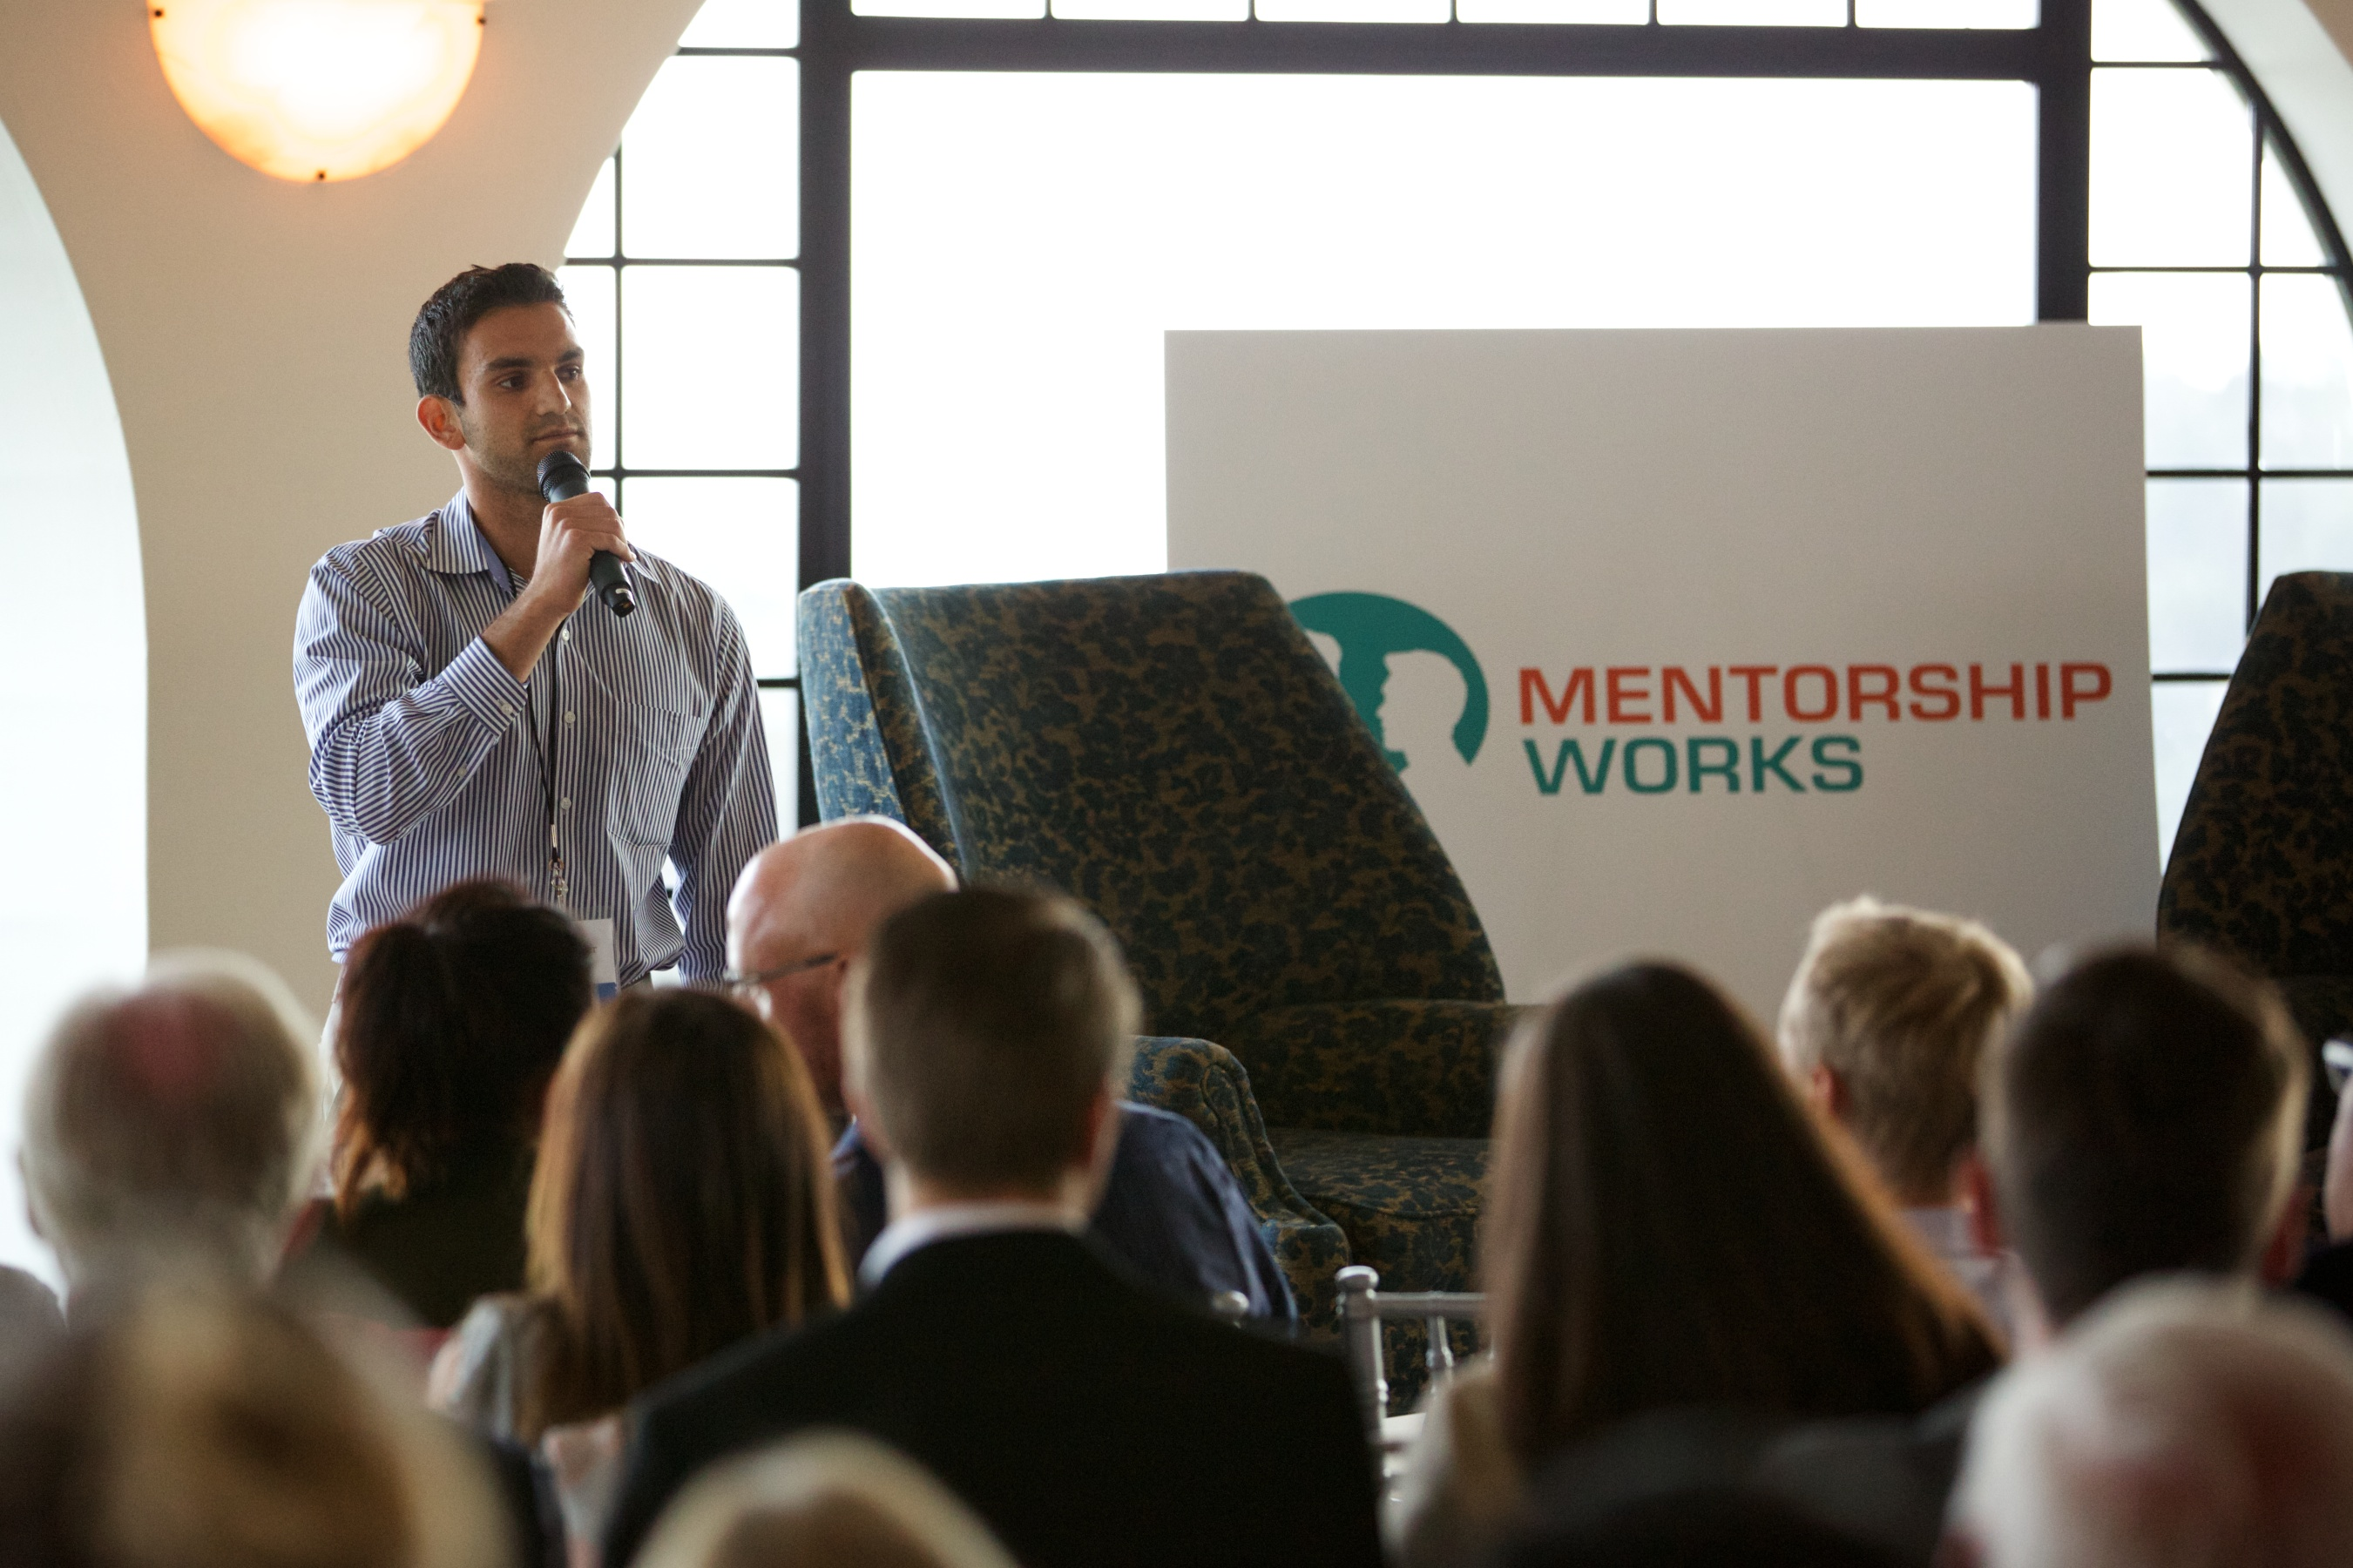 Mentorship Works Entrepreneur Meet Guests